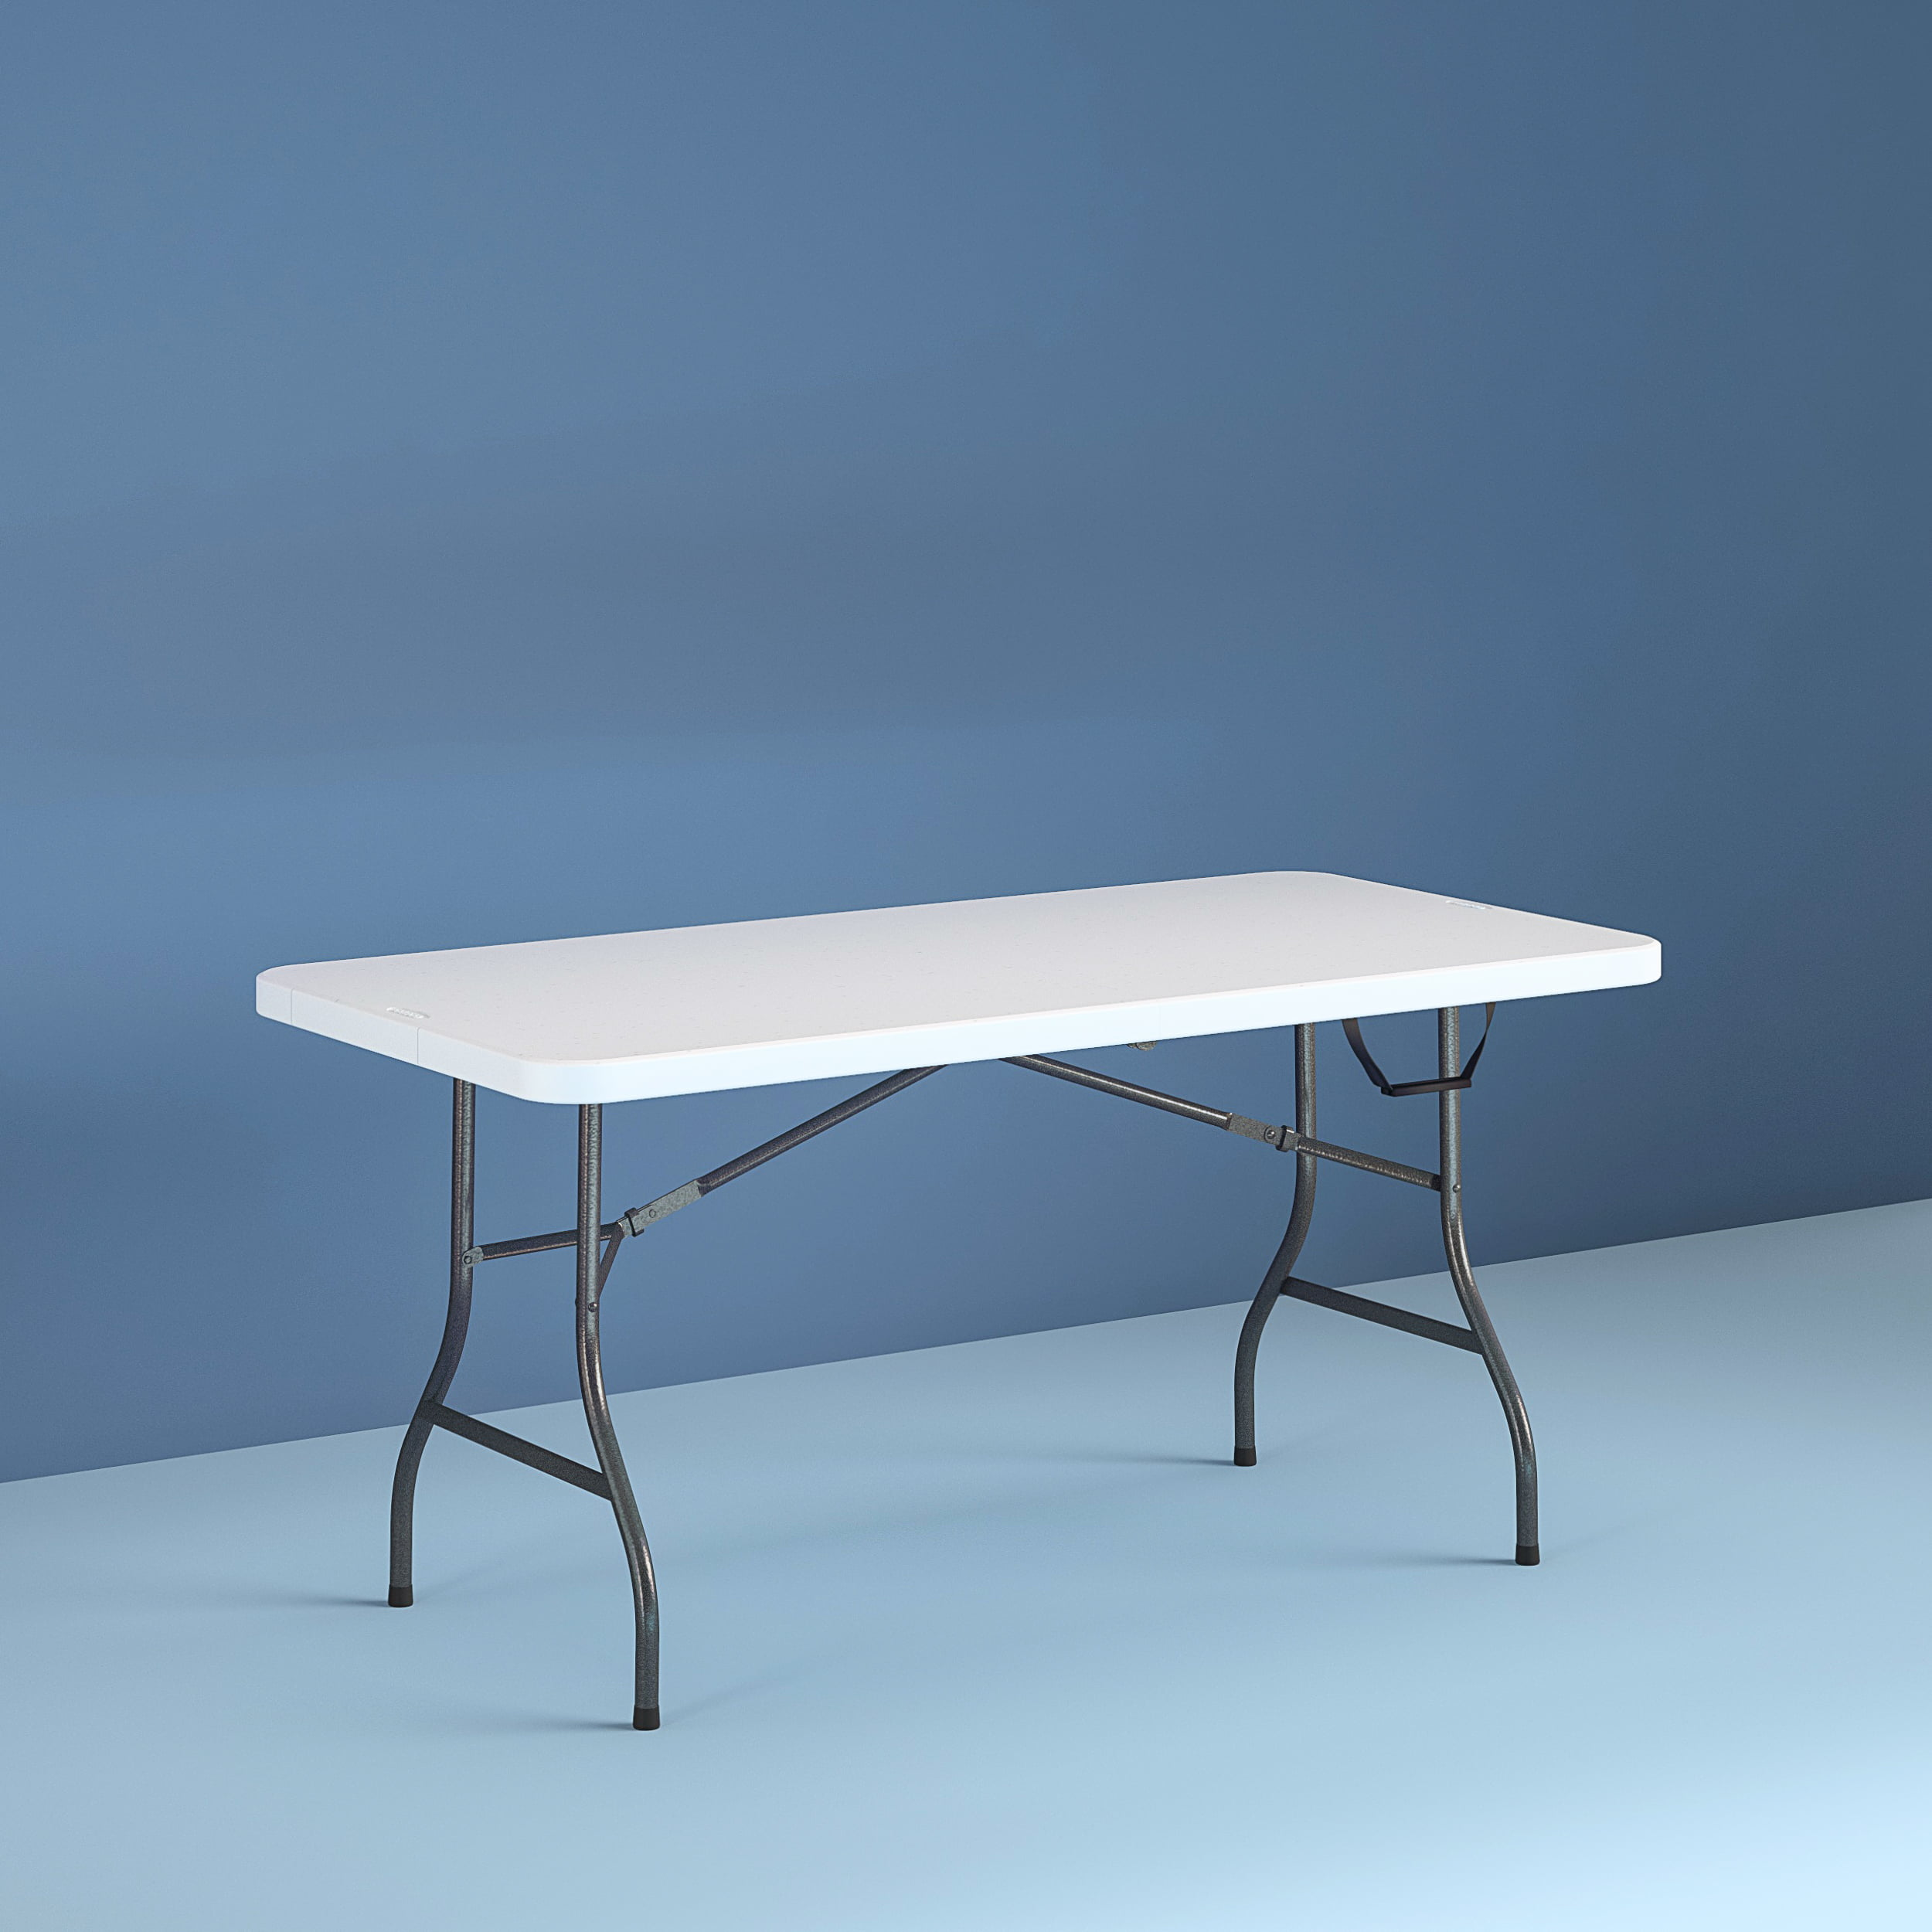 - Cosco 6 Foot Centerfold Folding Table, White - Walmart.com